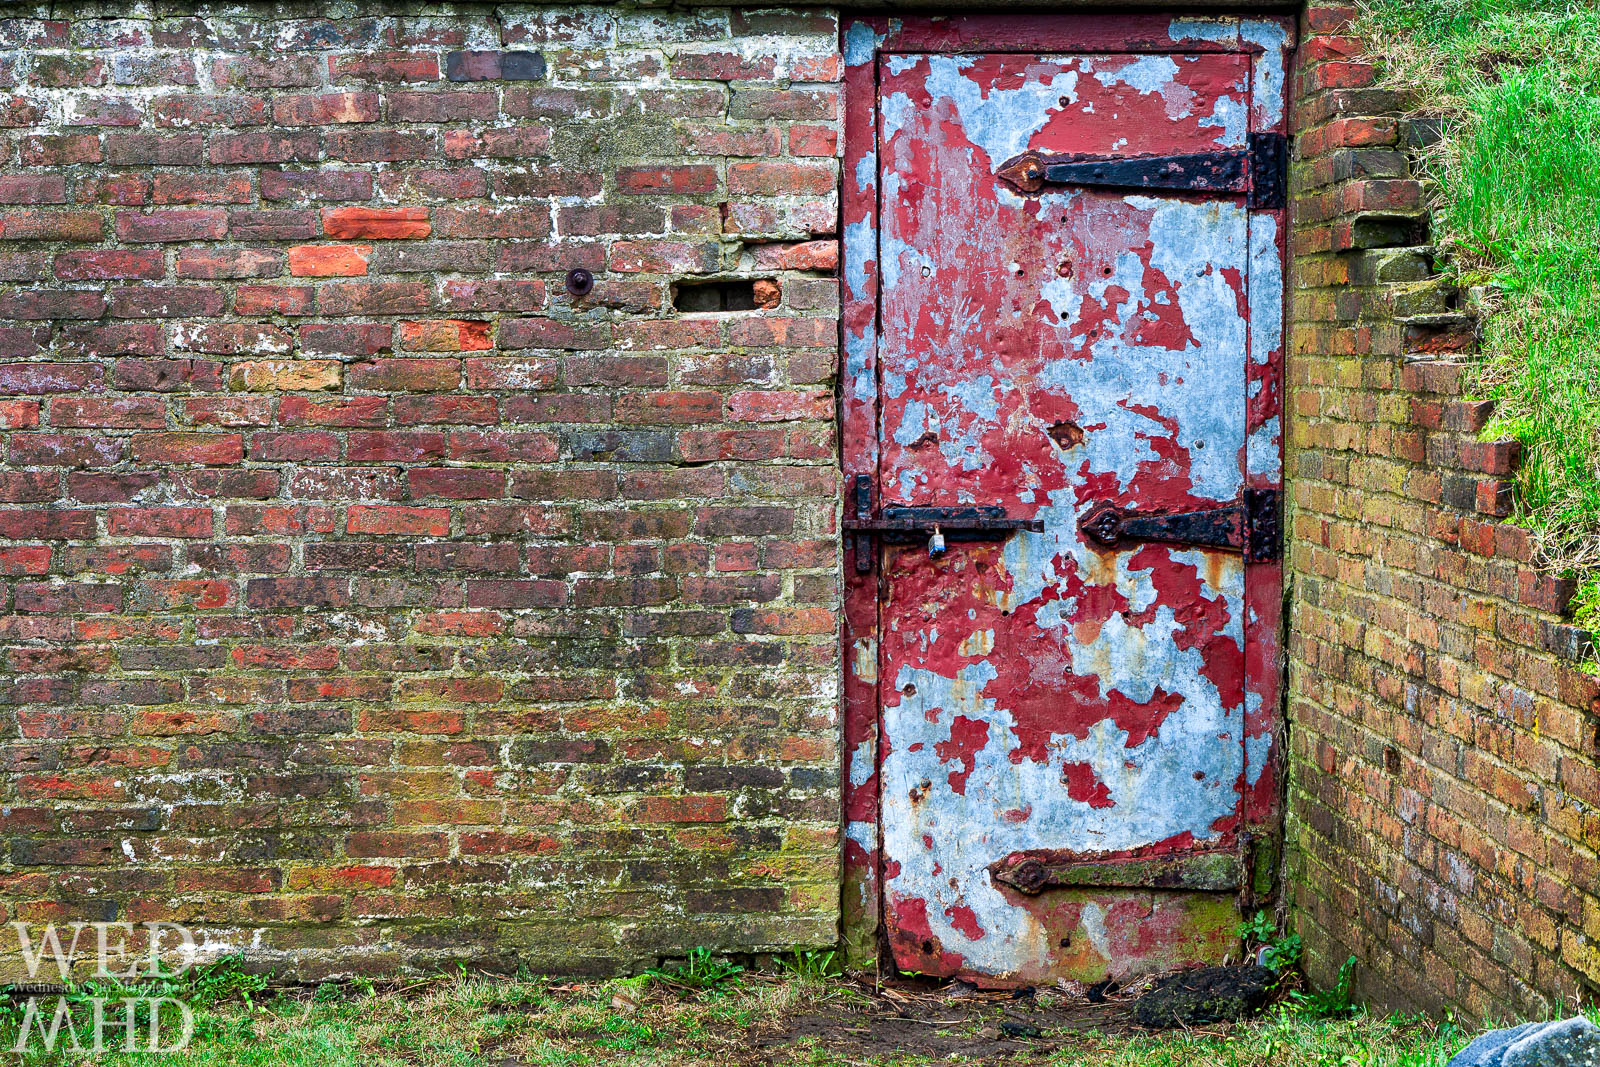 Behind the Red Door – Fort Sewall